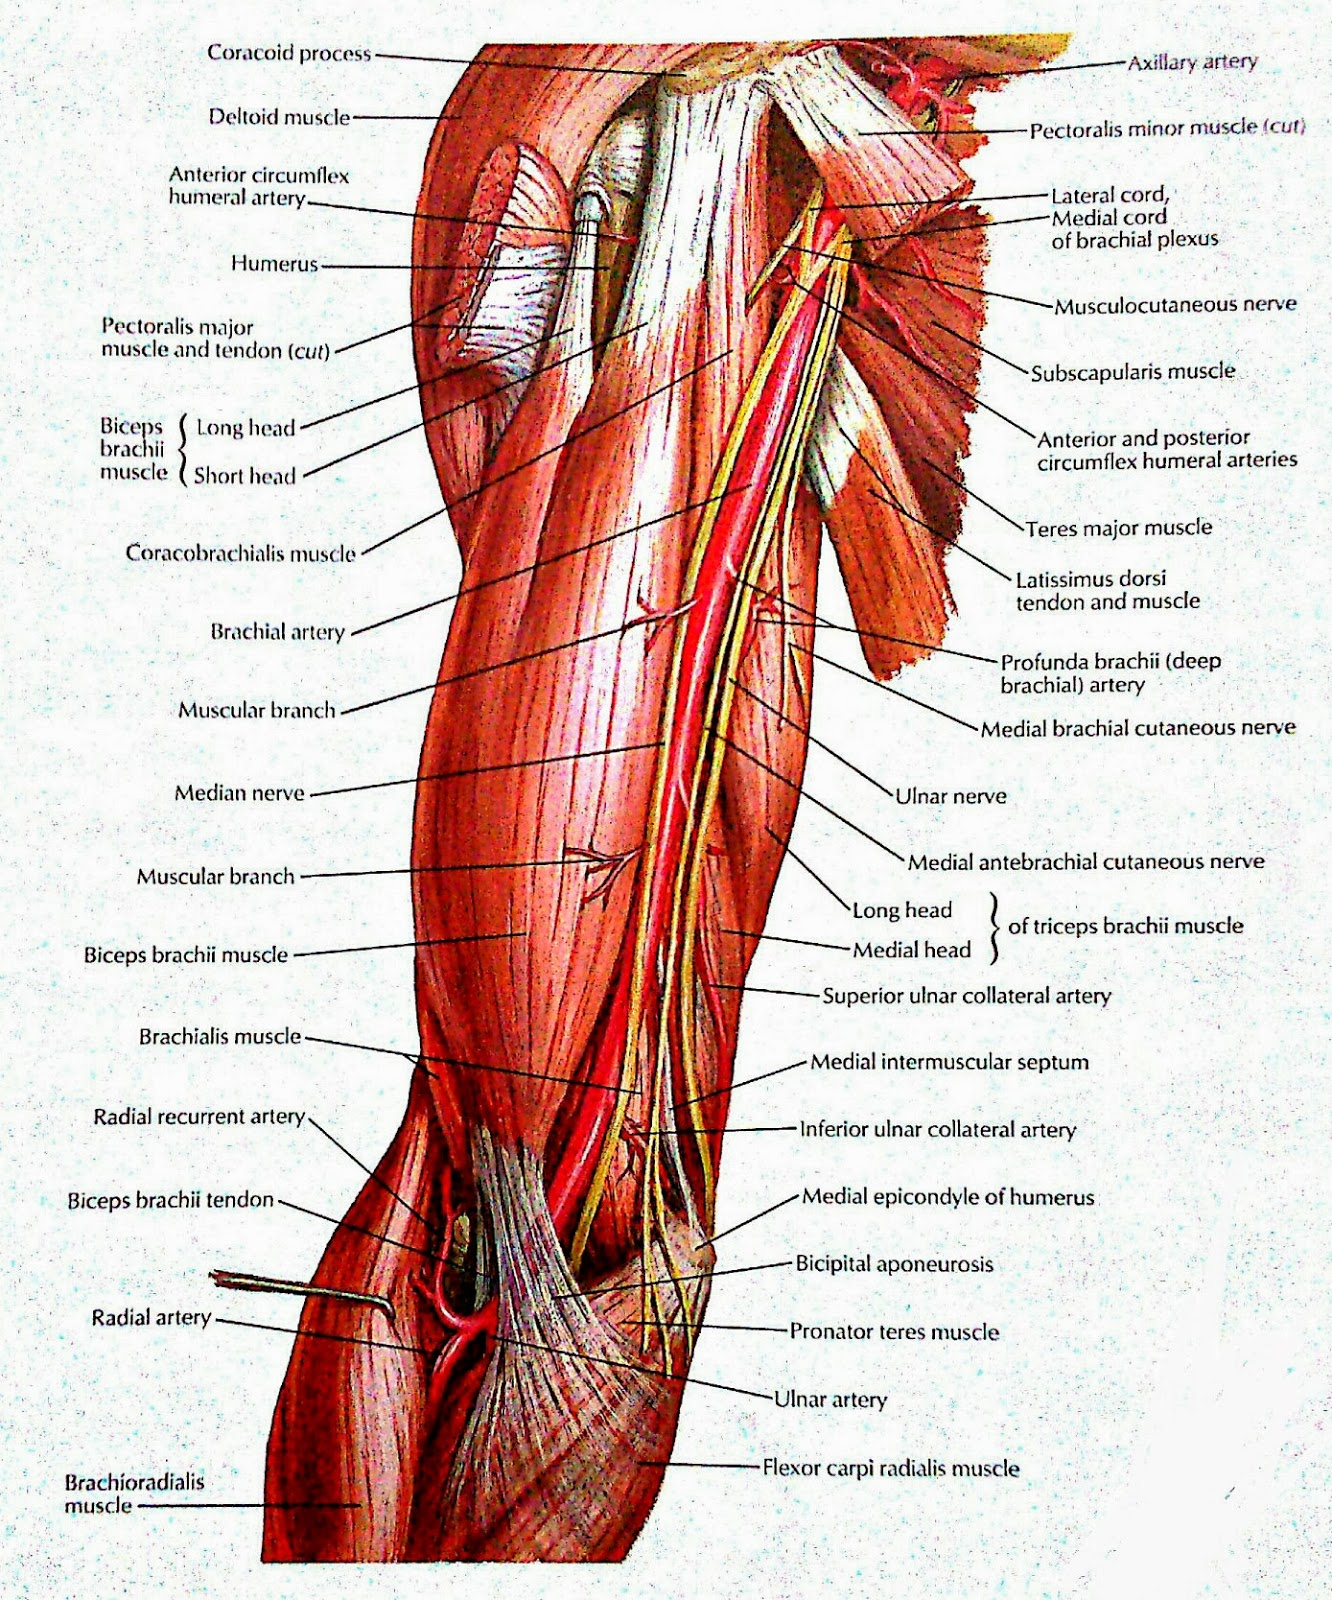 brachial artery and its branches & nerves in brachium | VISUAL ANATOMY